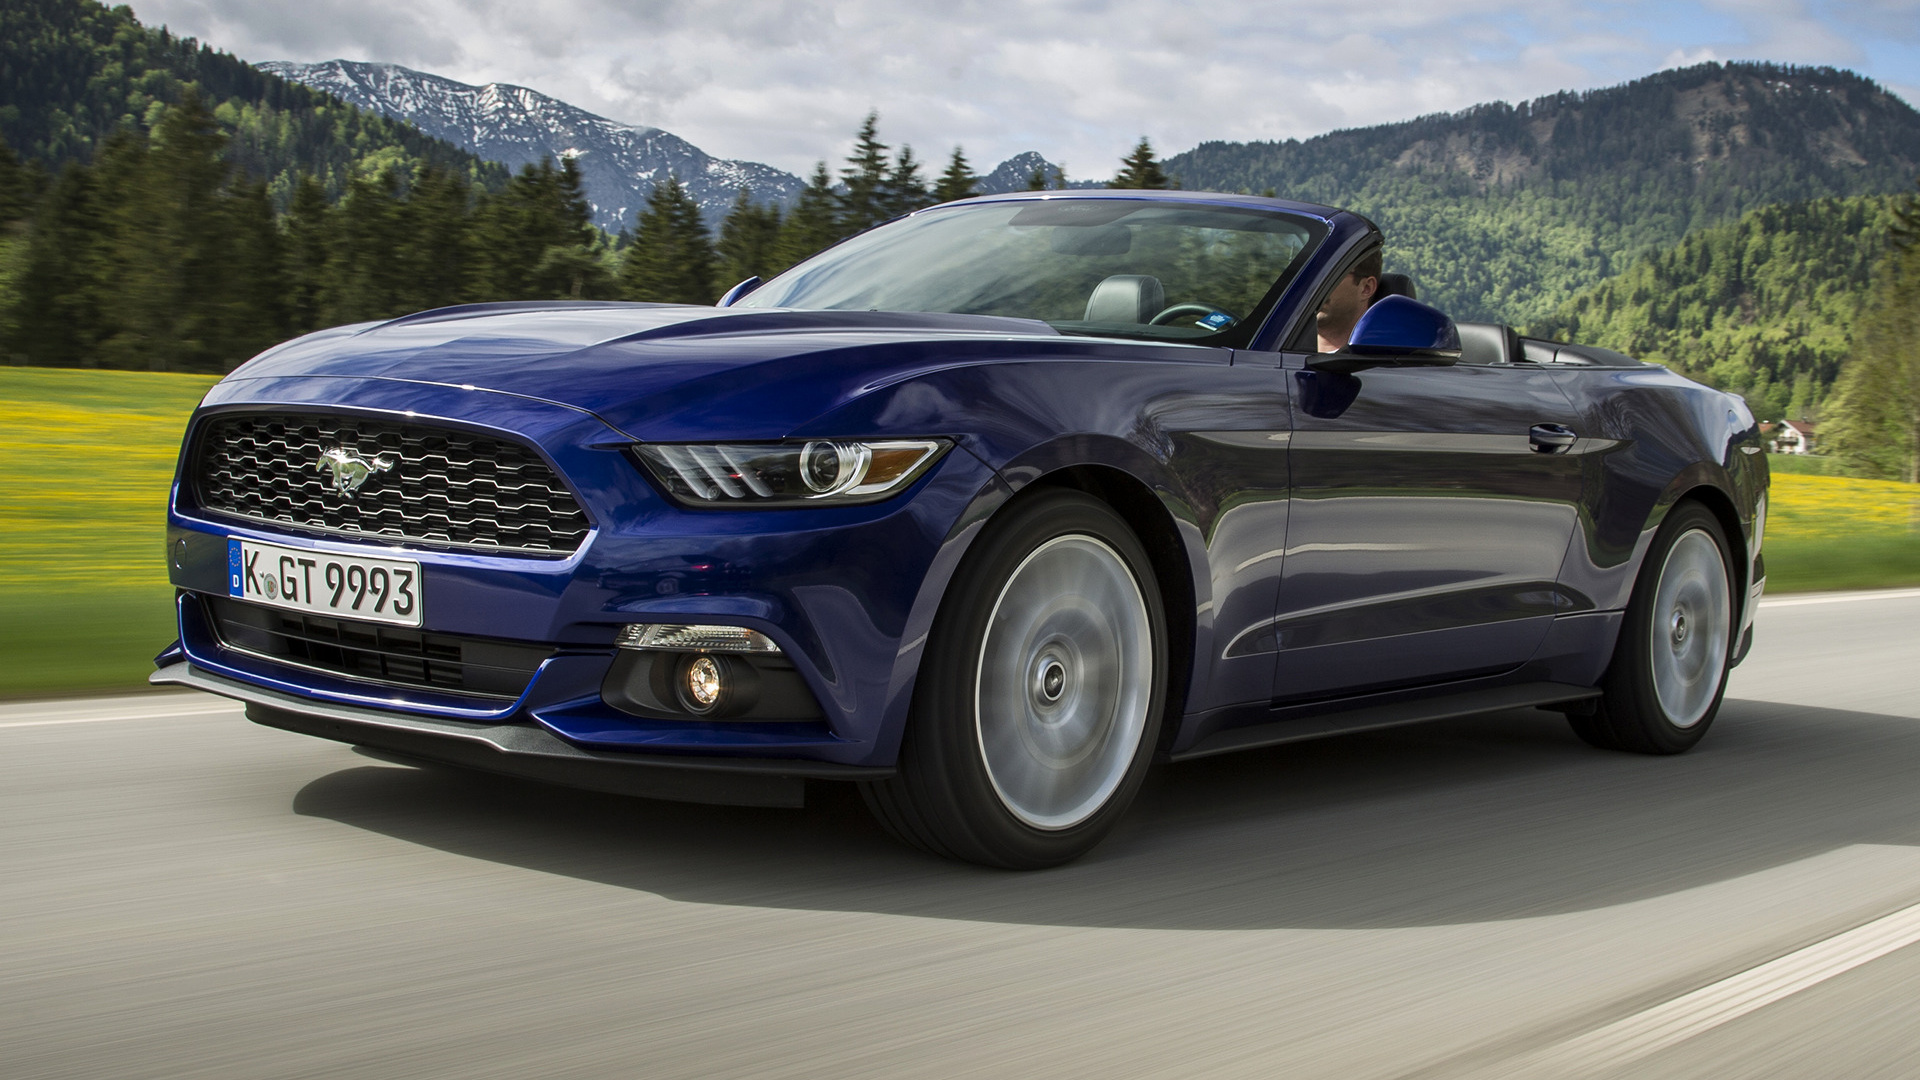 2015 Ford Mustang EcoBoost Convertible (EU) - Wallpapers ...